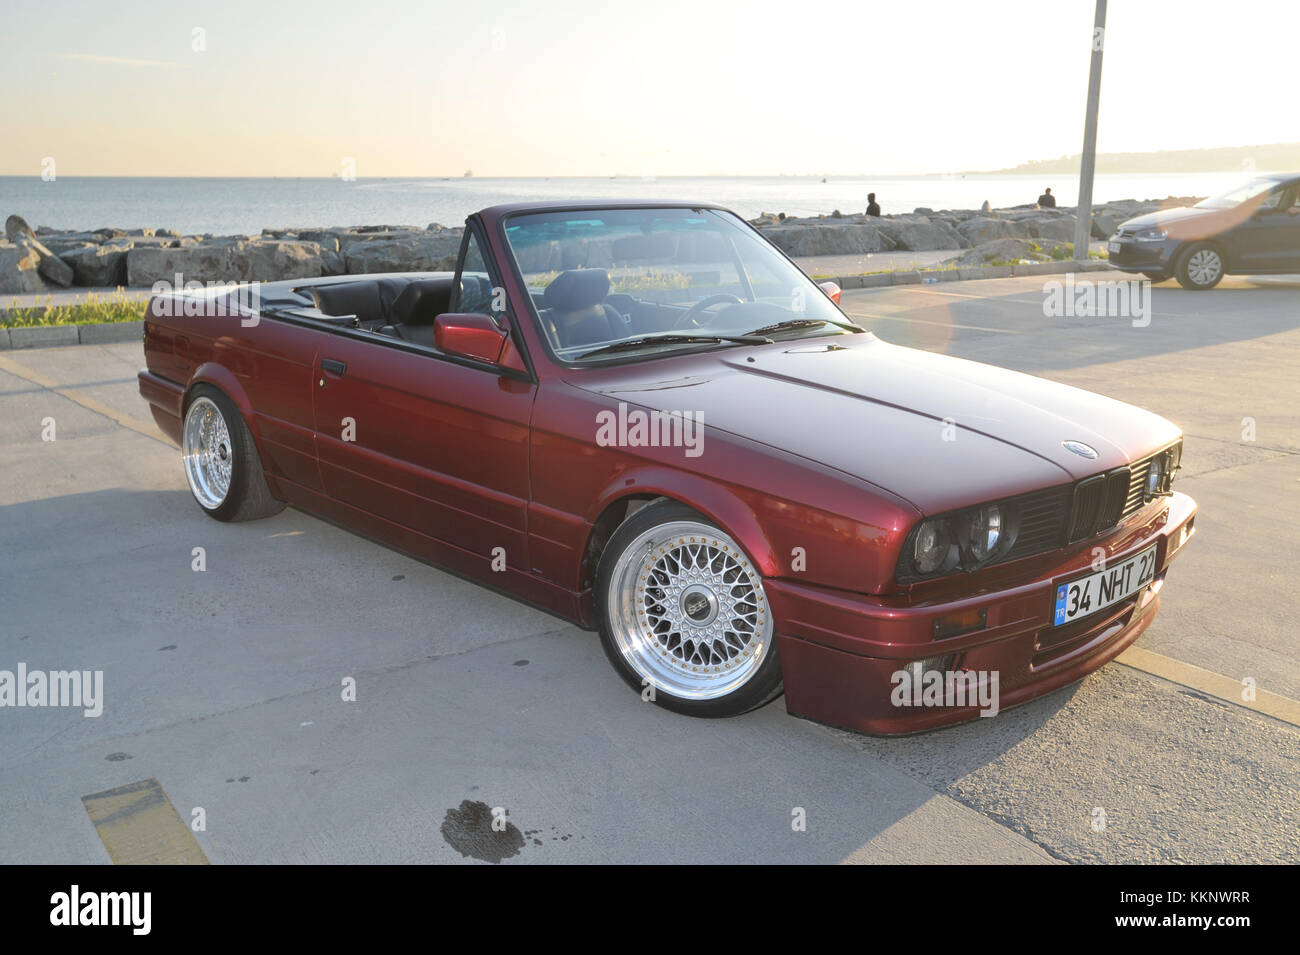 Modified Bmw E30 Convertible Lowered On Aftermarket